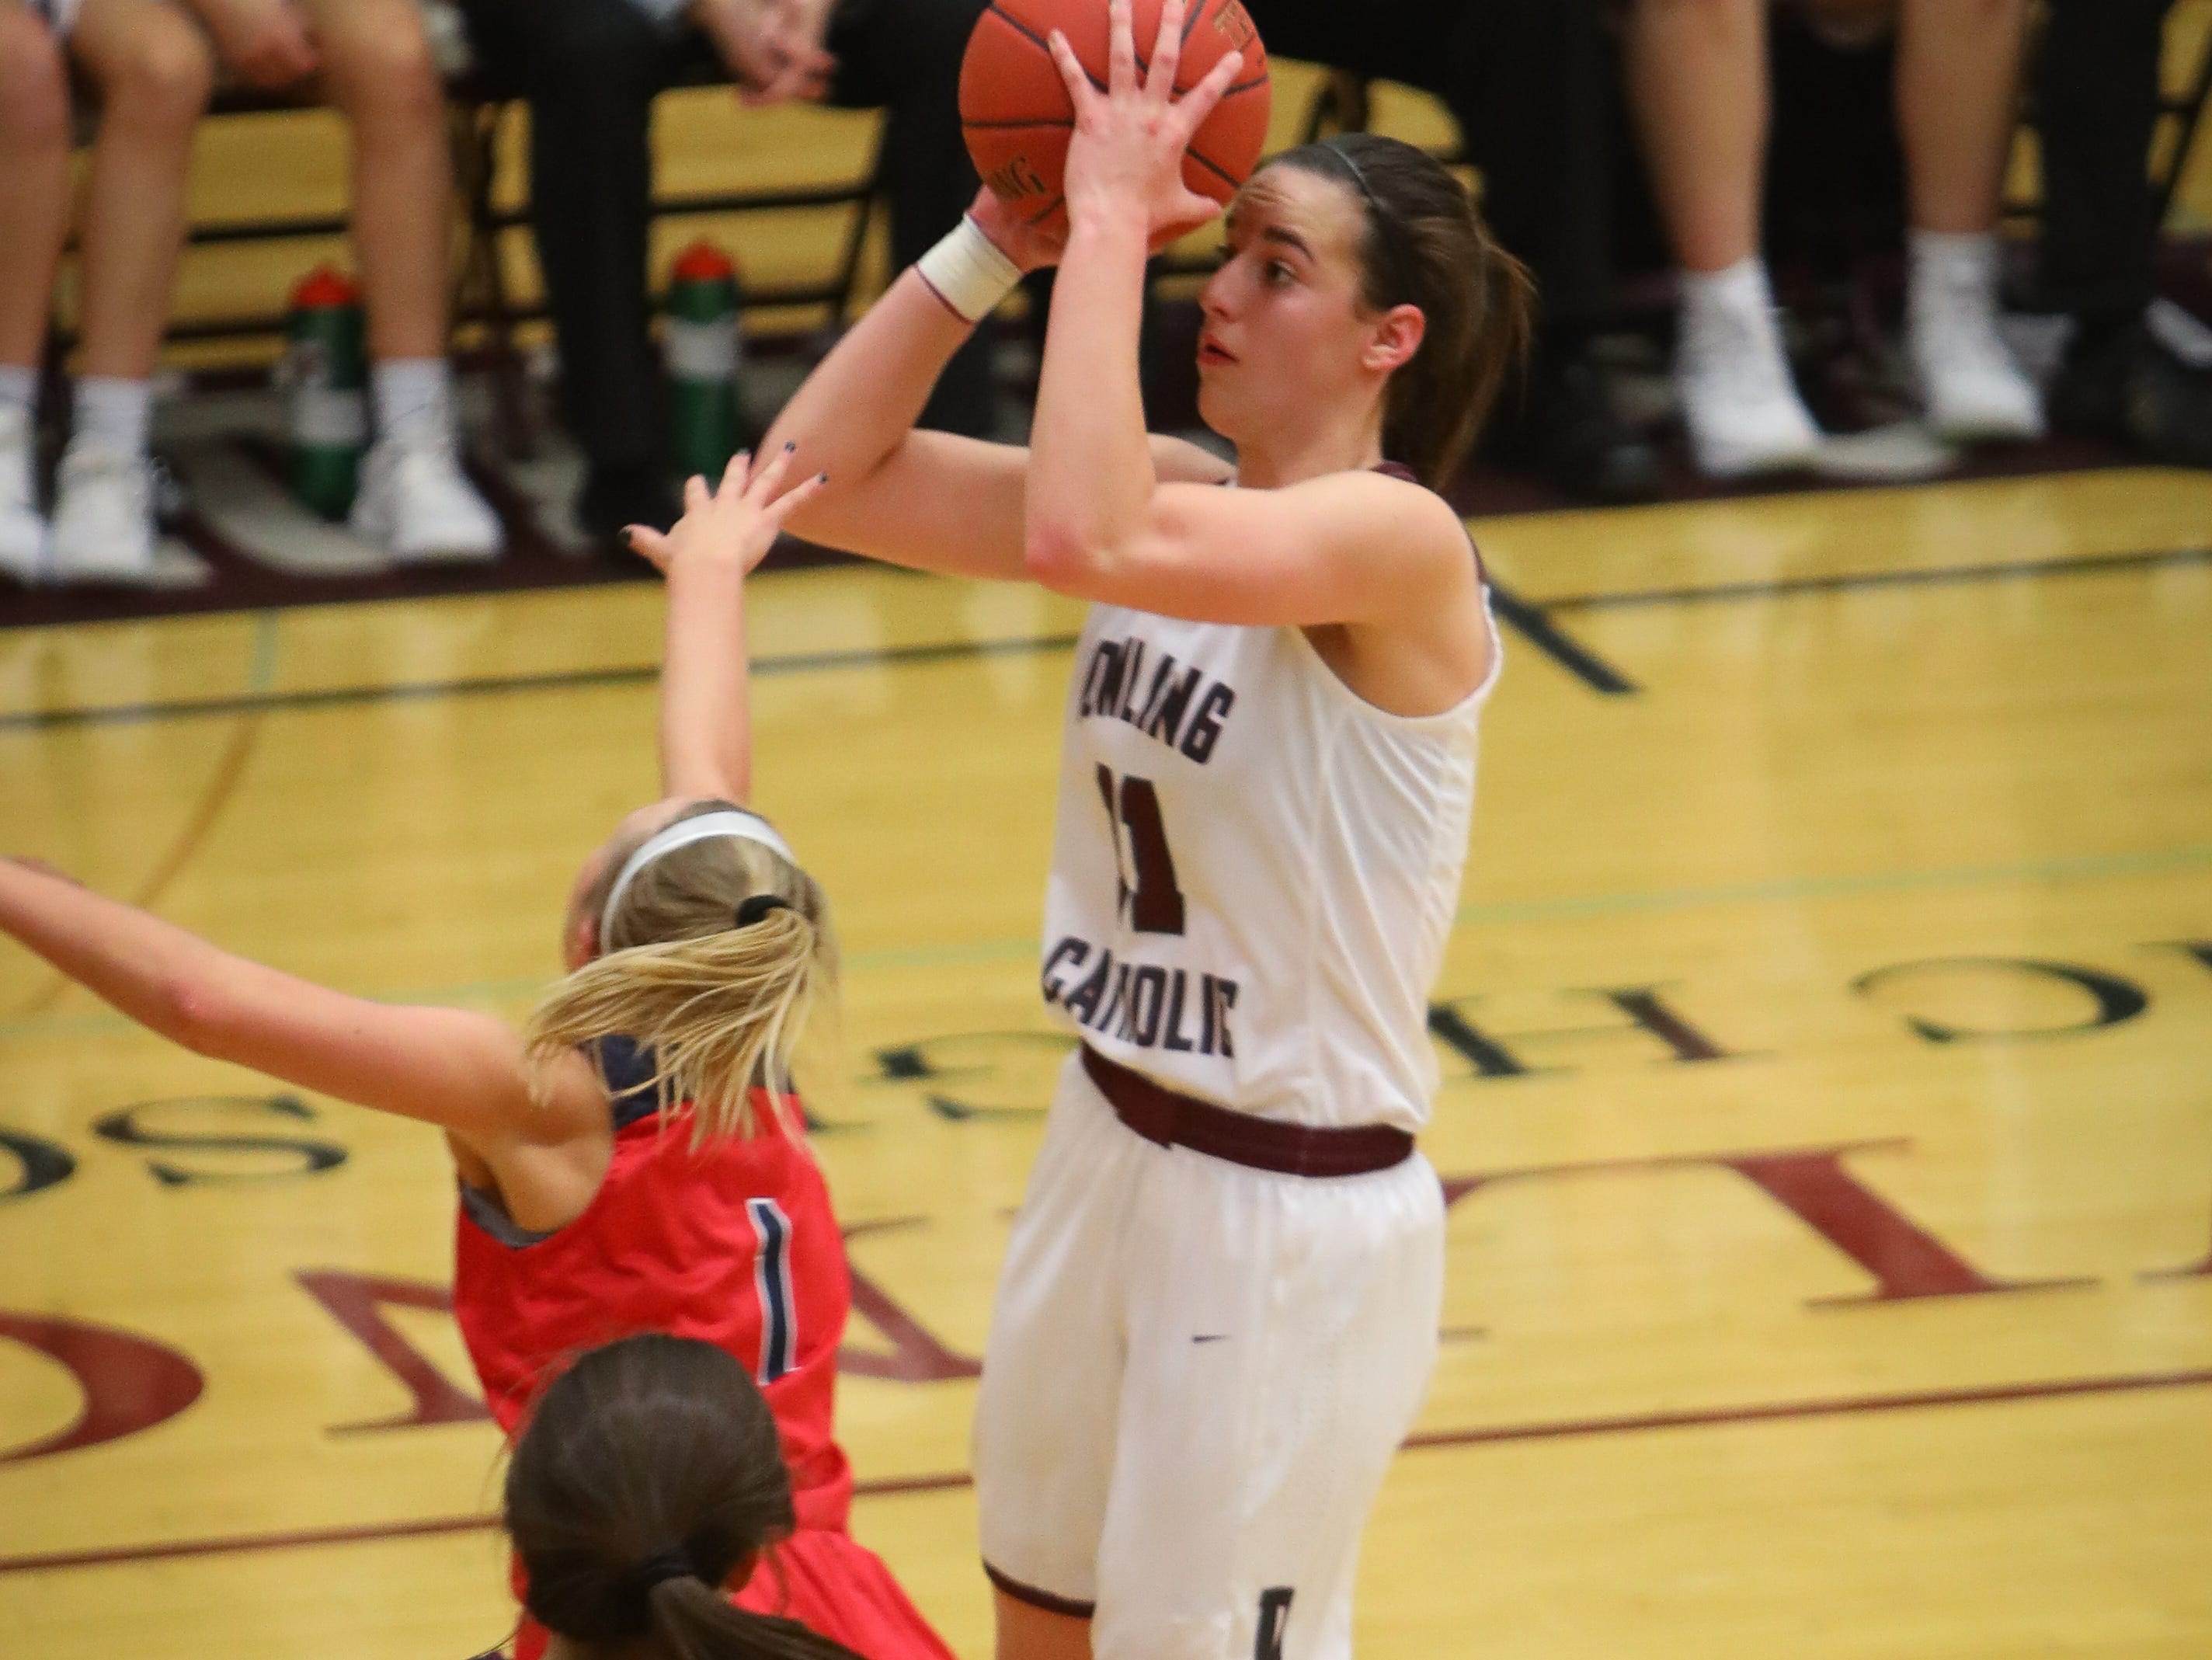 Dowling junior Caitlin Clark drains a jump shot during a girls high school basketball game between the Urbandale J-Hawks and the Dowling Catholic Maroons at Dowling Catholic High School on Jan. 11, 2019 in West Des Moines, Iowa. Clark went on to score 46 points in the game.